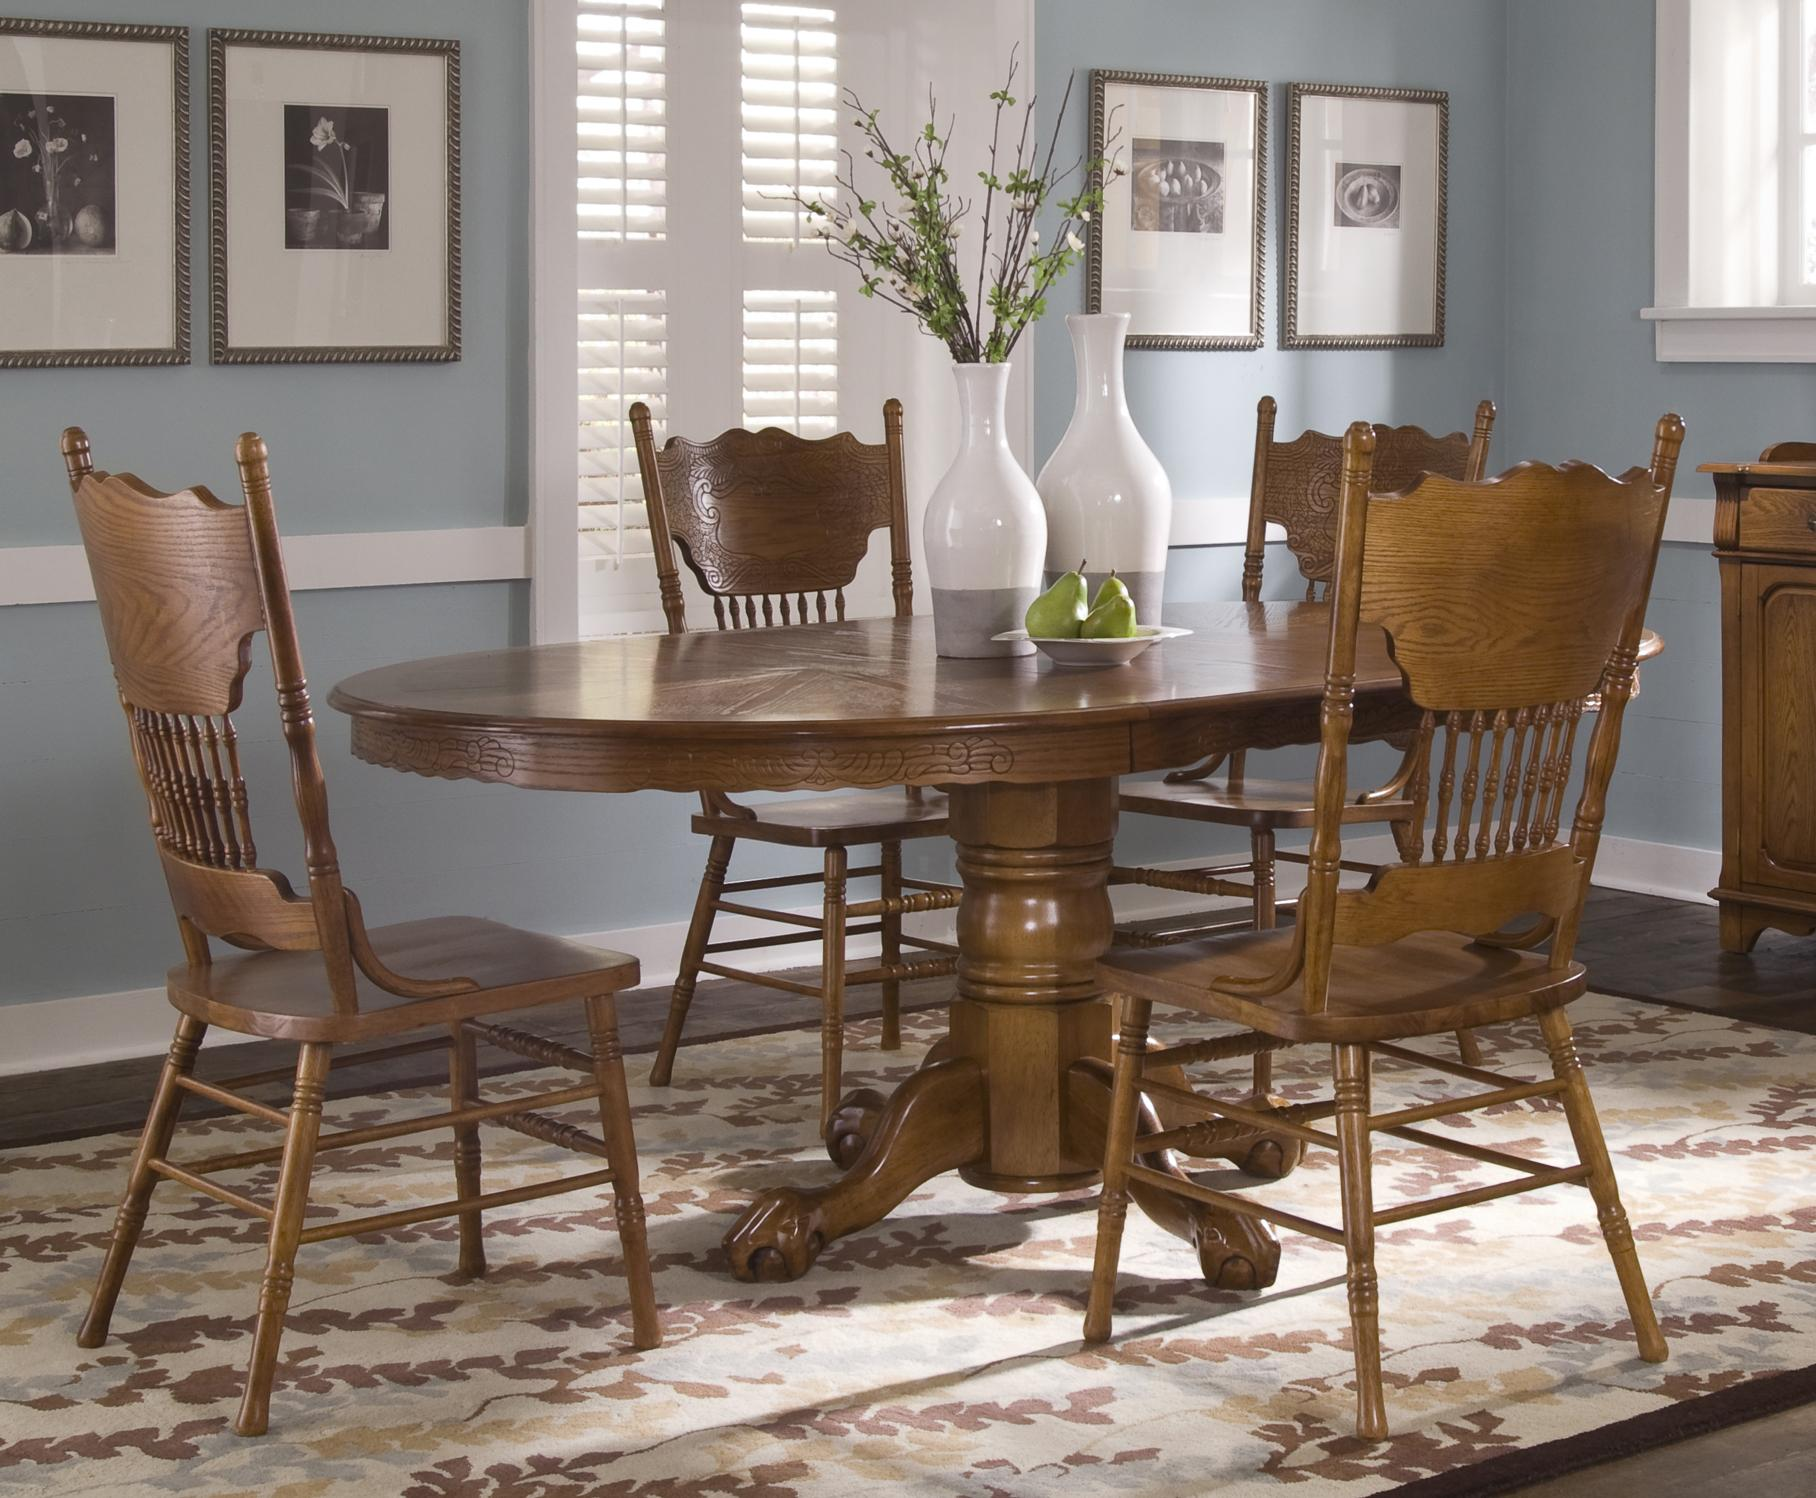 10 Seat Dining Table Set Nostalgia Single Pedestal Table And Side Chair Set By Liberty Furniture At Royal Furniture